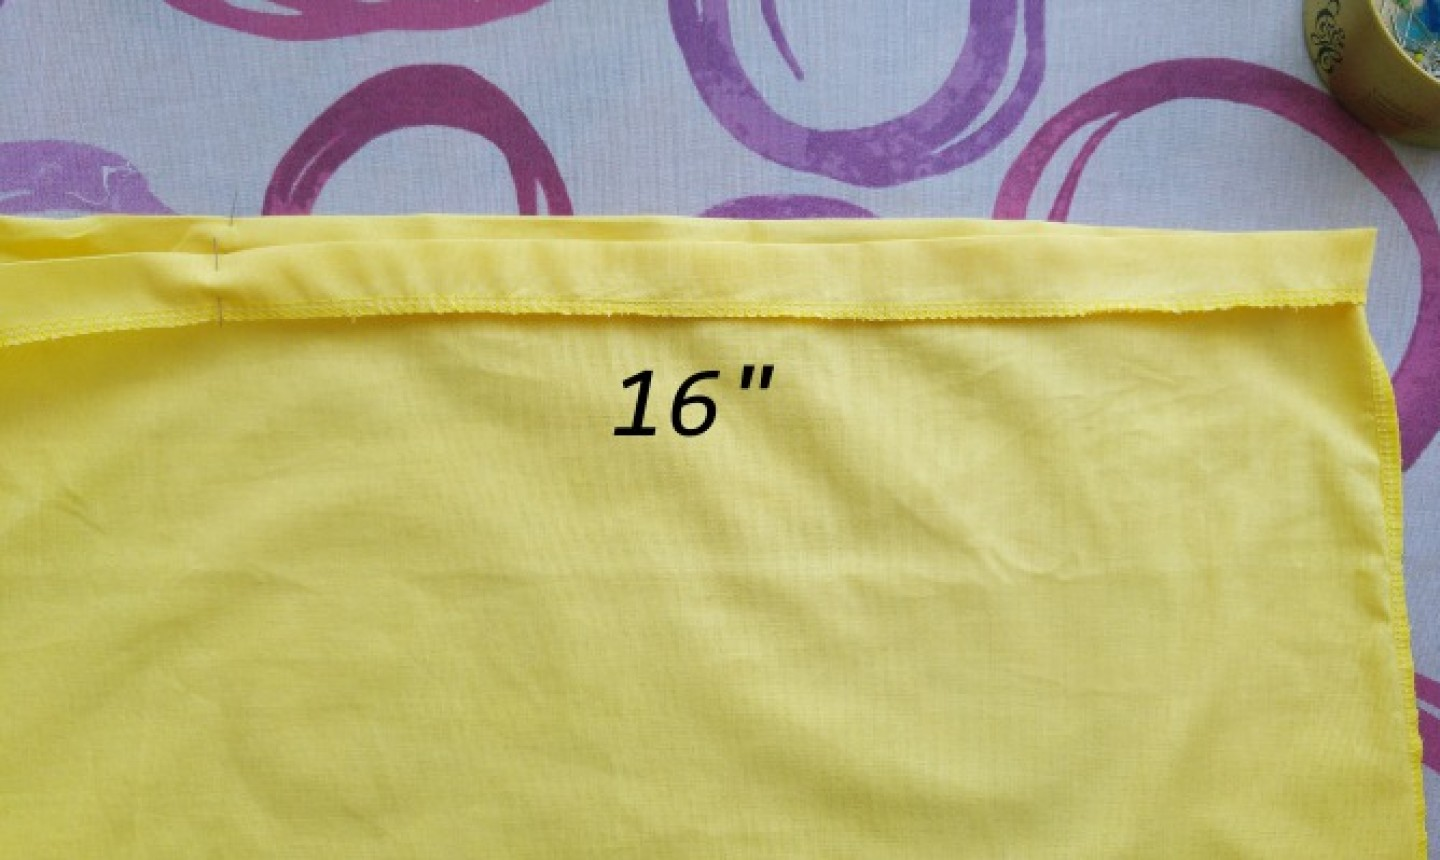 Fabric with 16